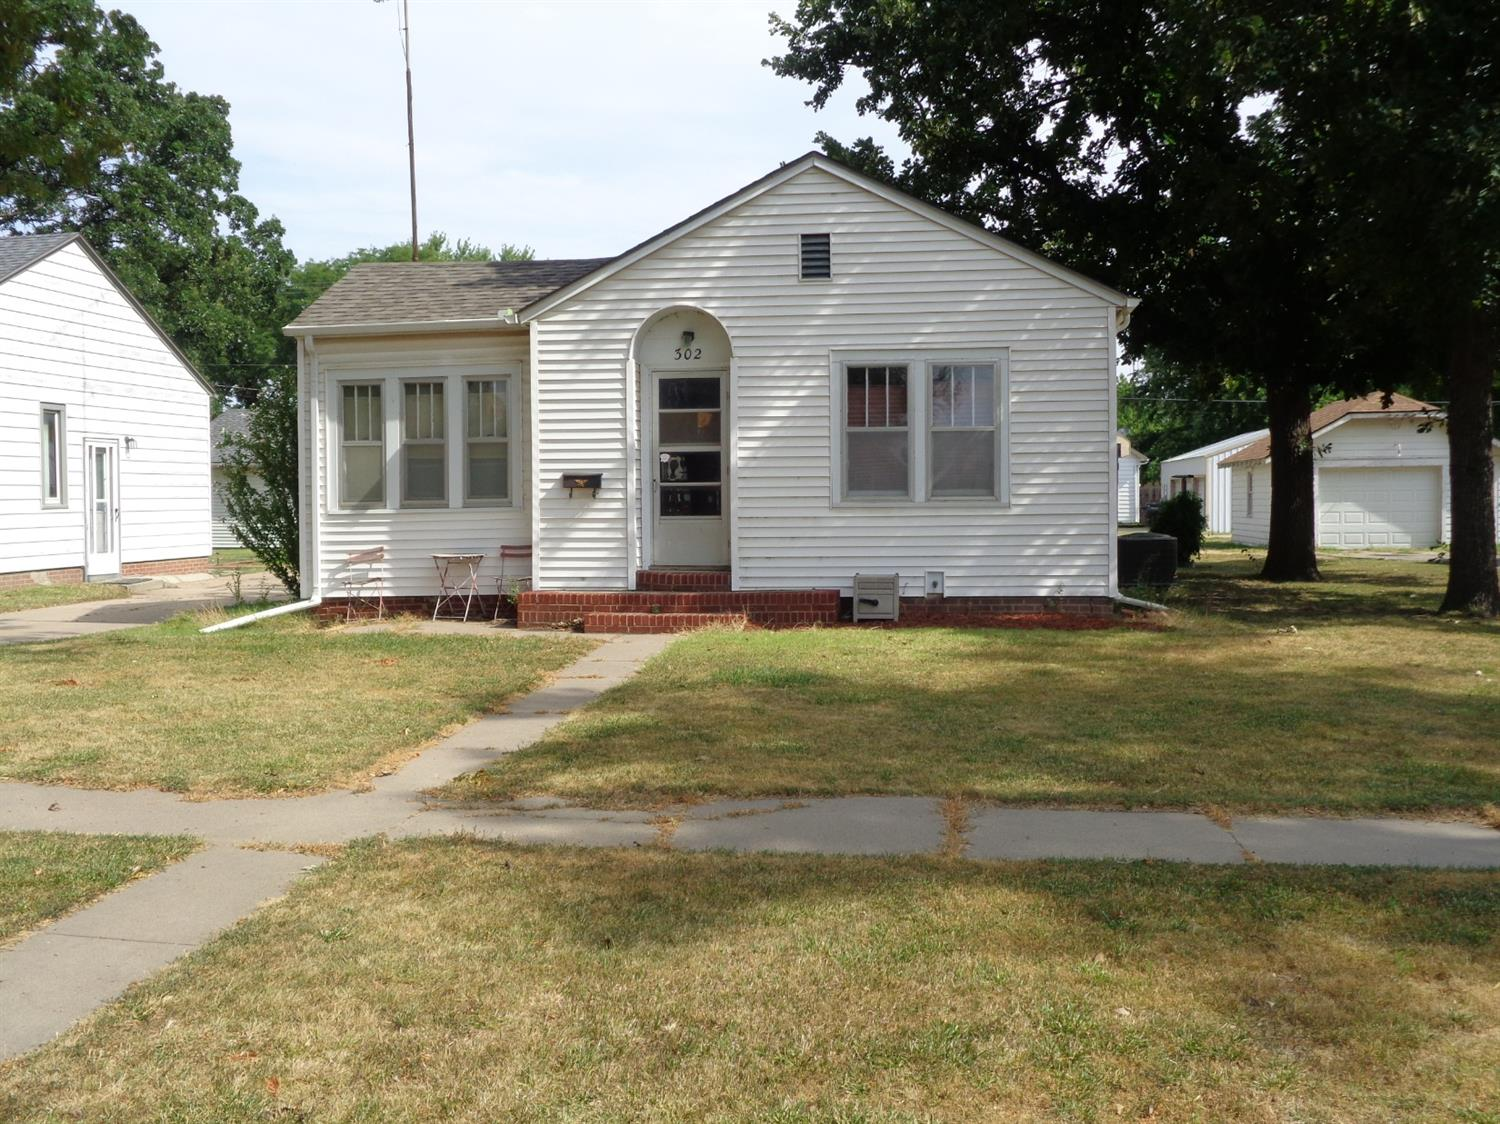 This home features an updated kitchen, 2 bedrooms, 1 bath, hardwood floors in bedrooms and single detached garage.